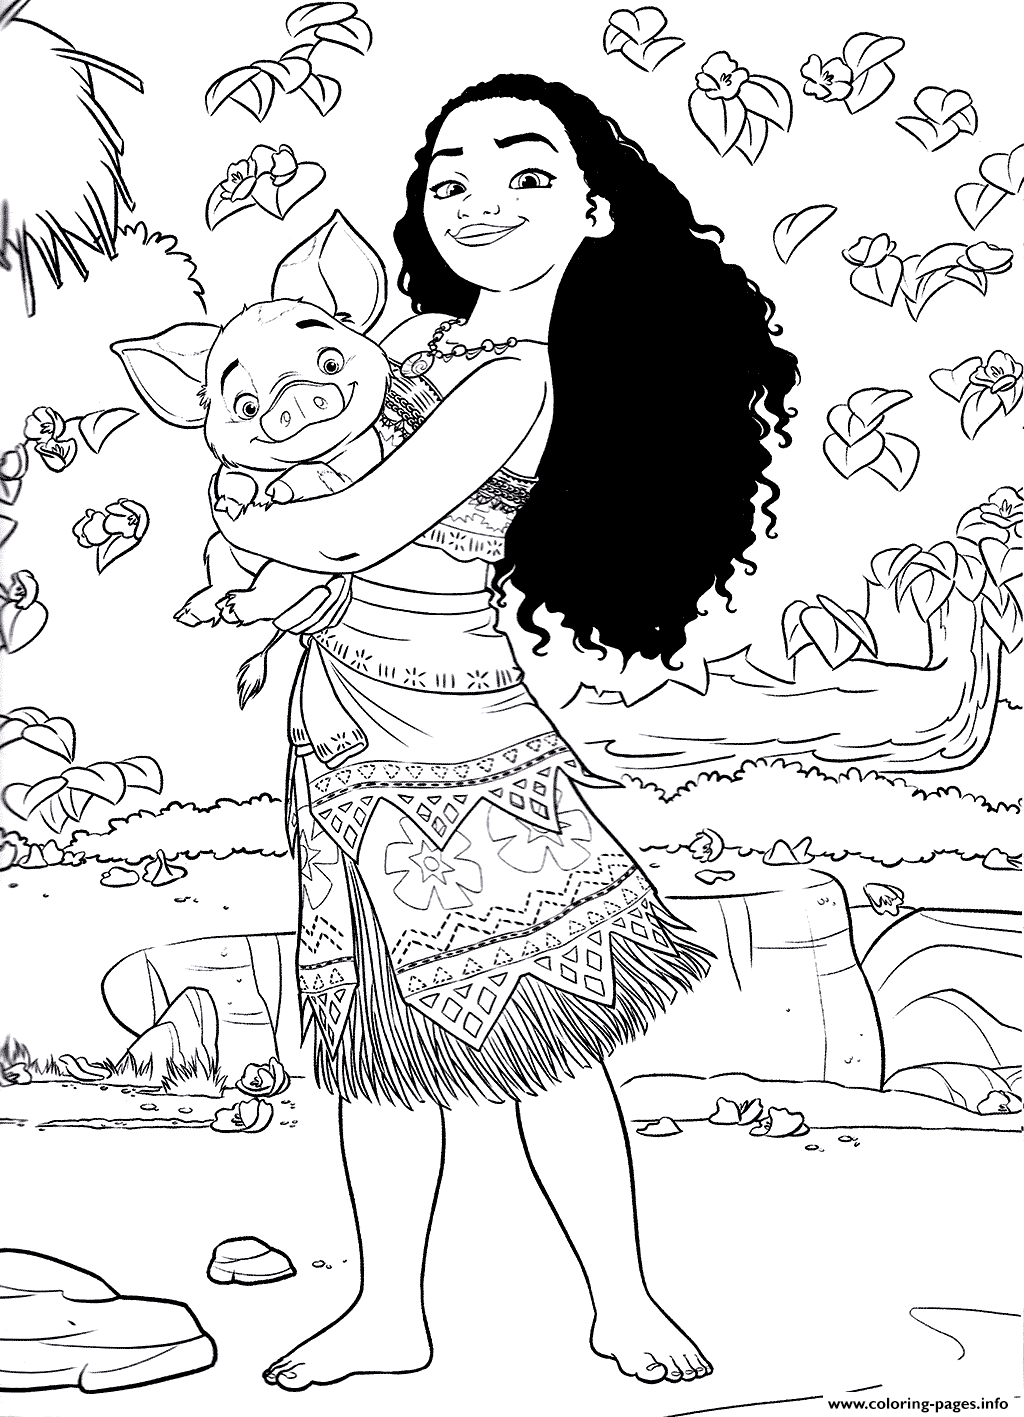 Winx mermaid coloring pages to print and download for free - Princess Moana Disney Coloring Pages Printable